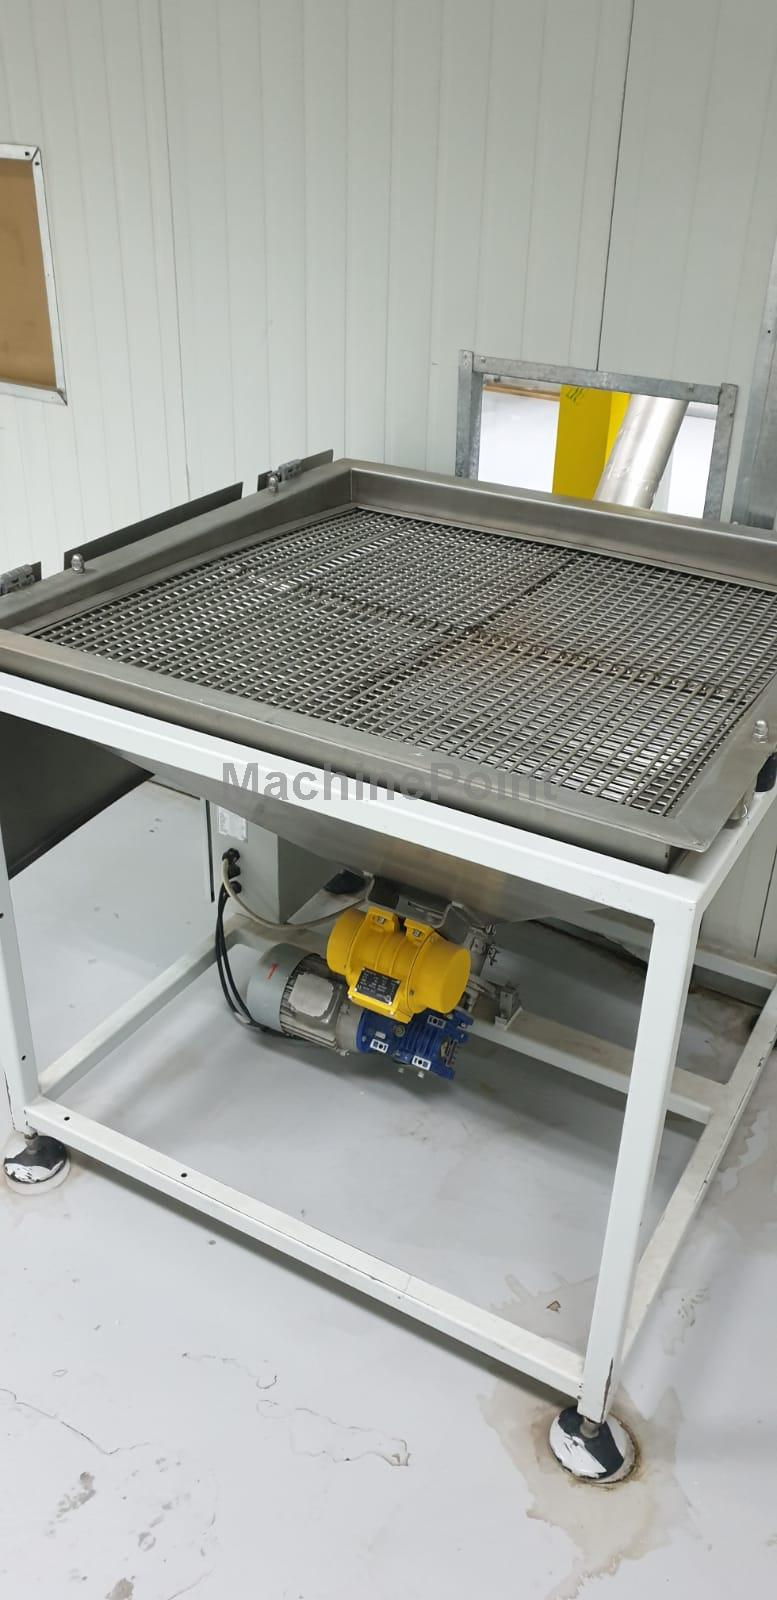 WOLF - VPC 250 - Used machine - MachinePoint